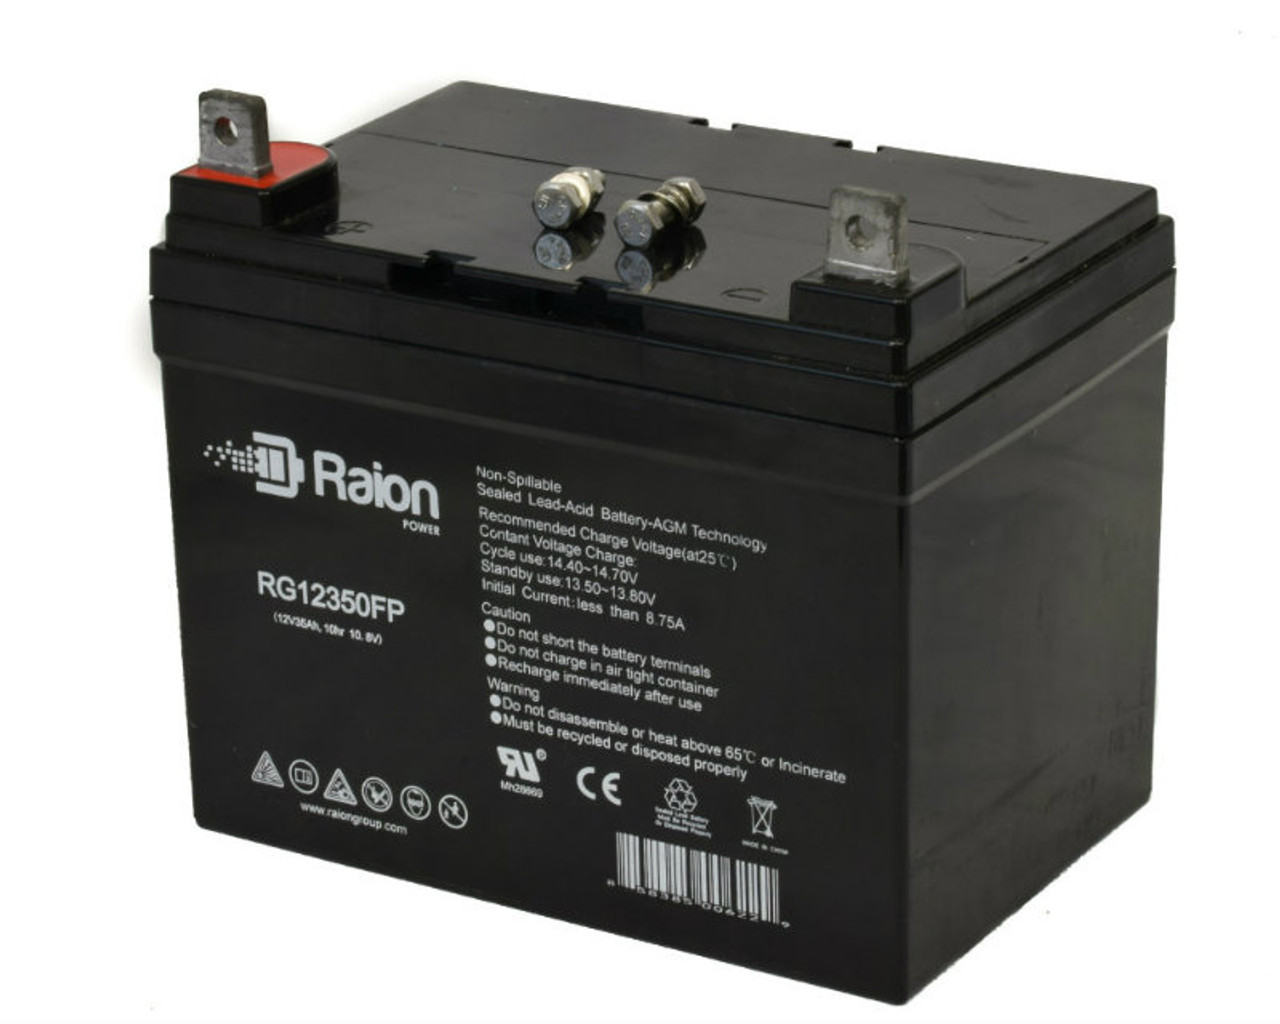 RG12350FP Sealed Lead Acid Battery Pack For 21st Century AGM1248T Mobility Scooter